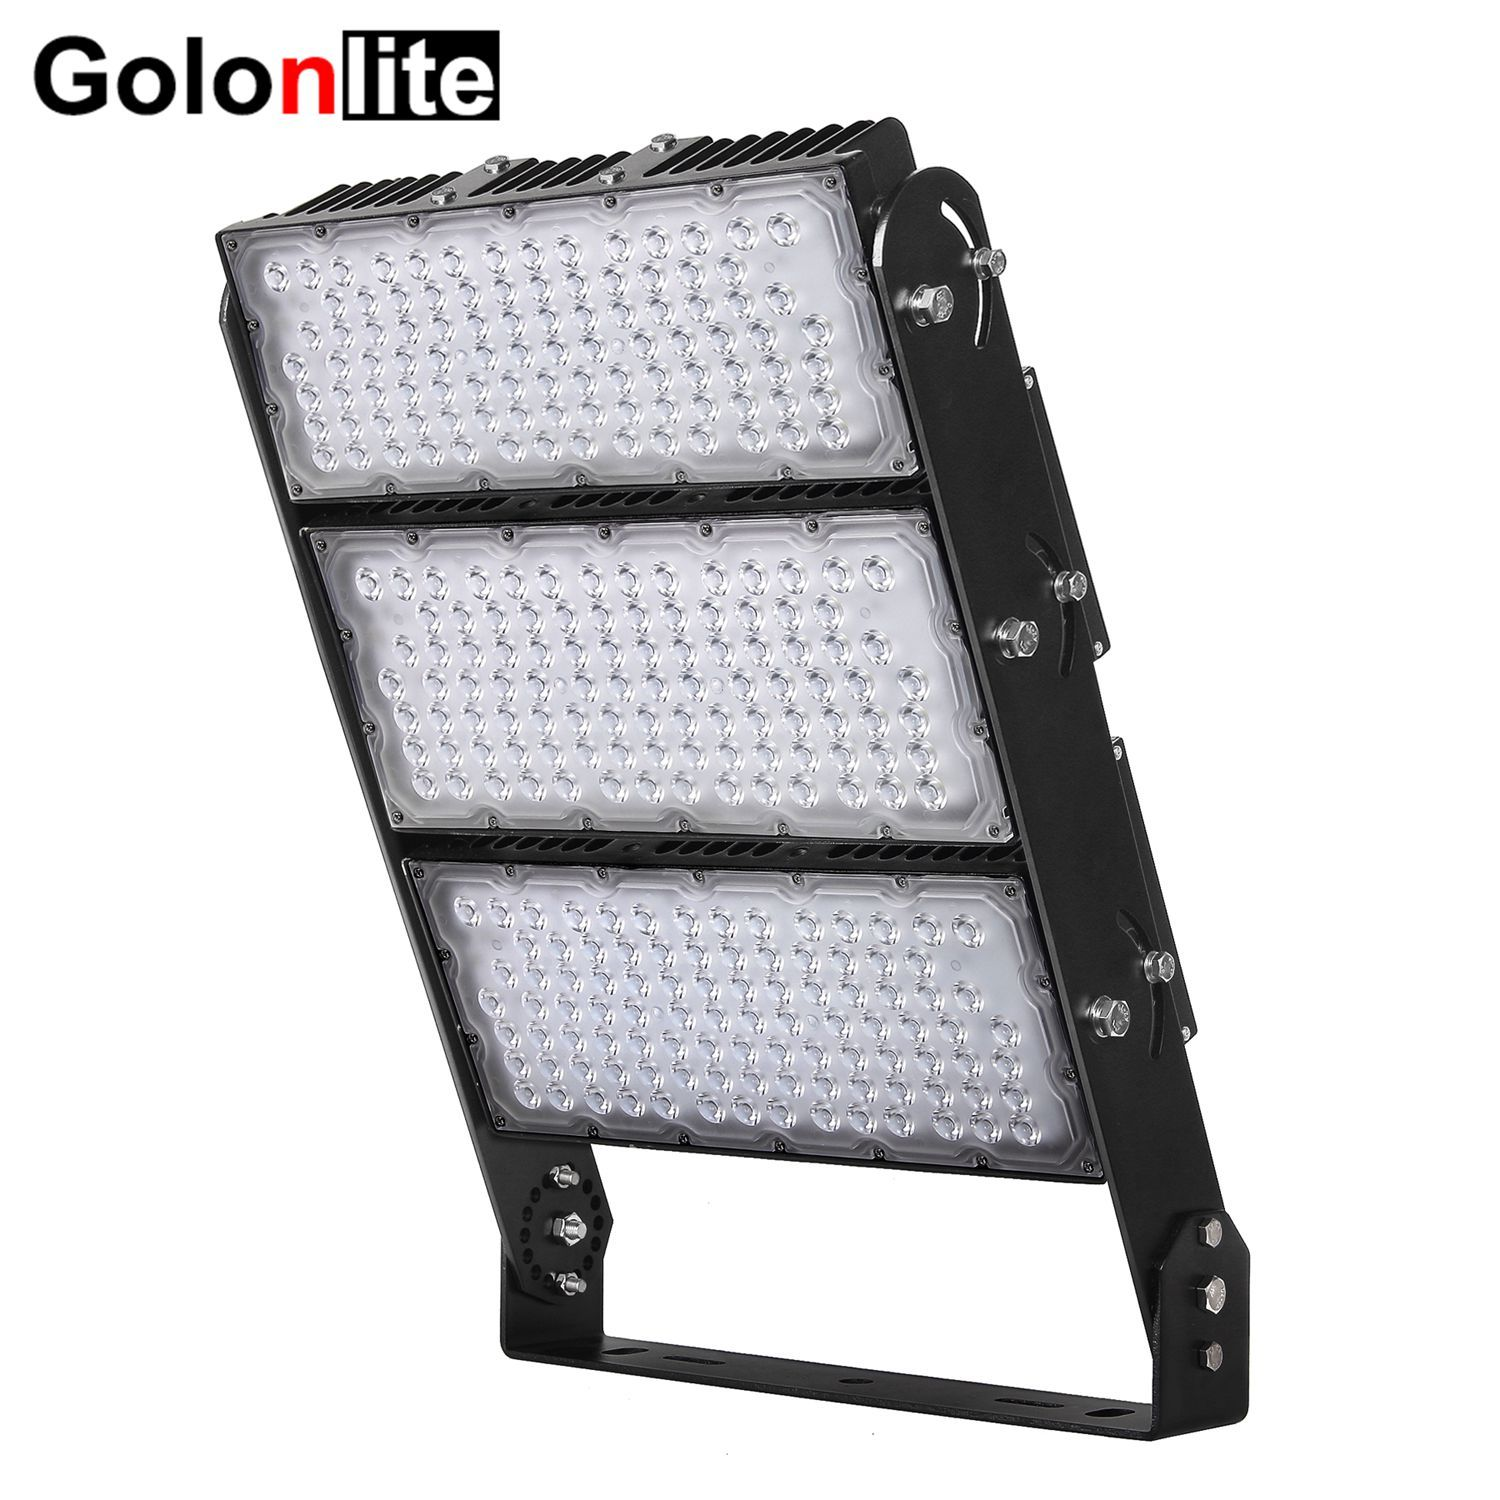 Led High Mast Light 145lm W 10 25 40 Degrees 100 277vac 1200w 1000w 900w 600w 500w 400w 300w Meanwell Inventronics Led Flood Lights Led Flood Stadium Lighting